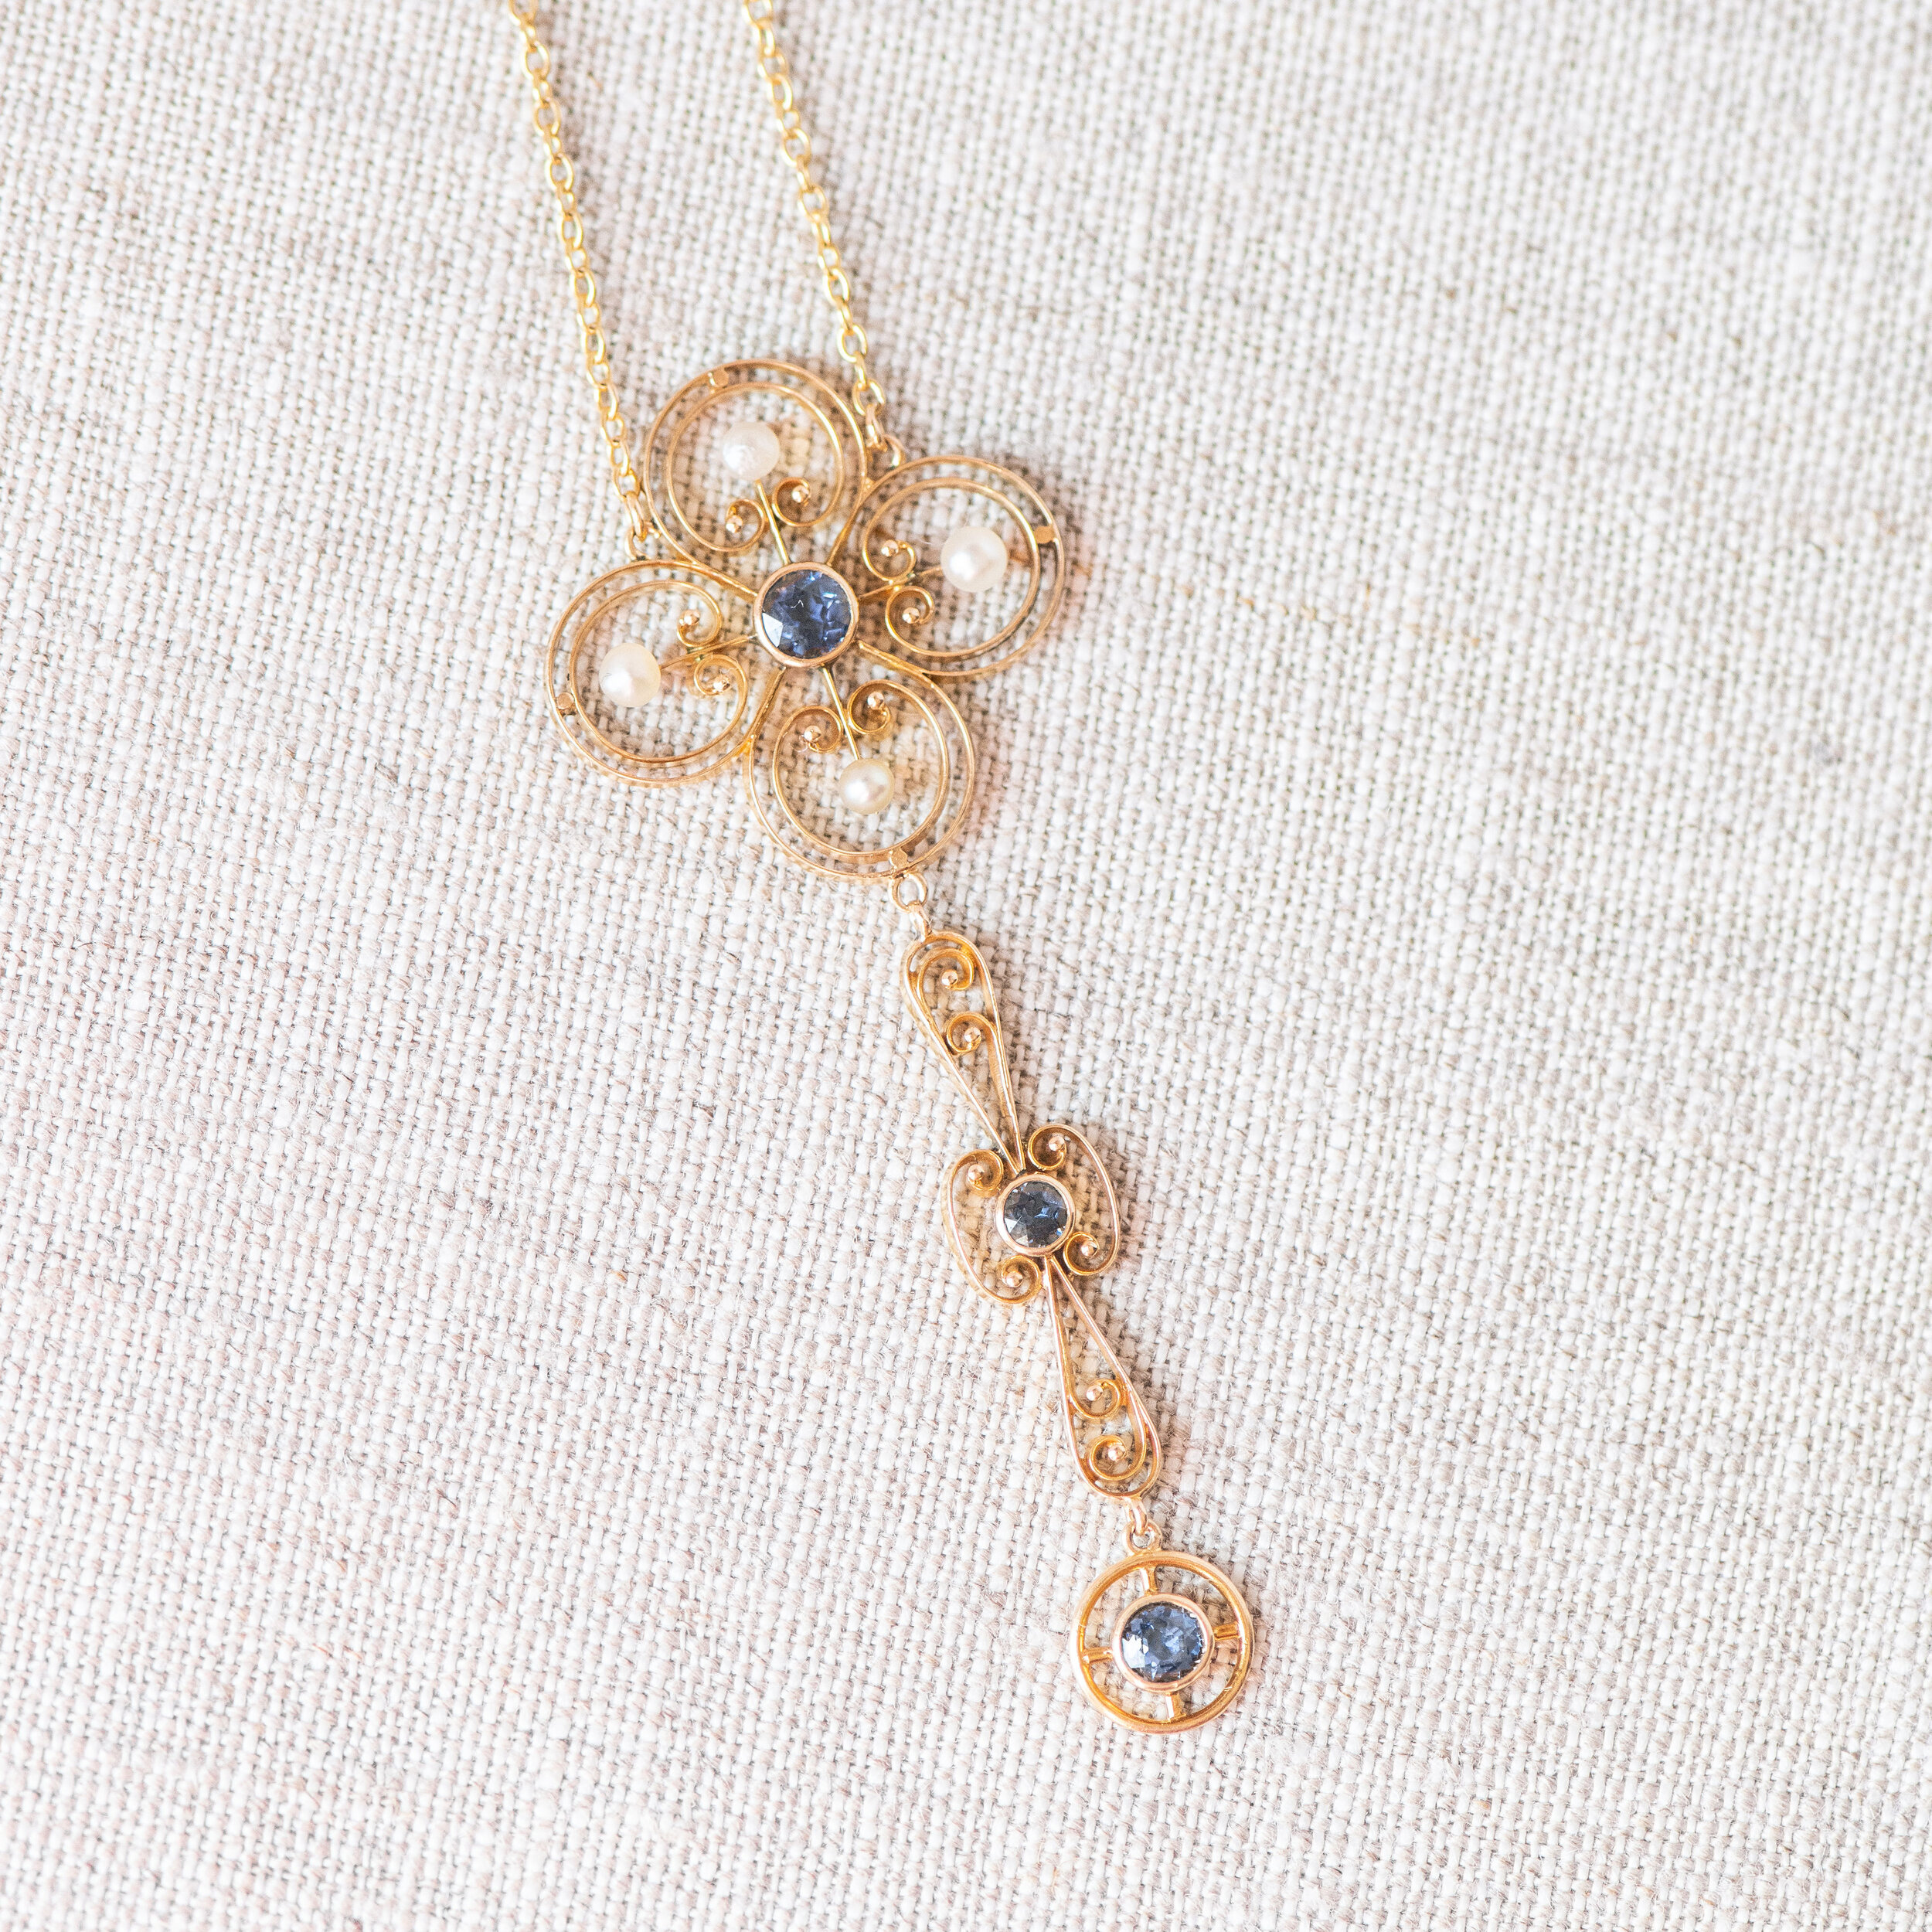 A Victorian era beauty sweetly set with sapphires and pearls. Shop  HERE .